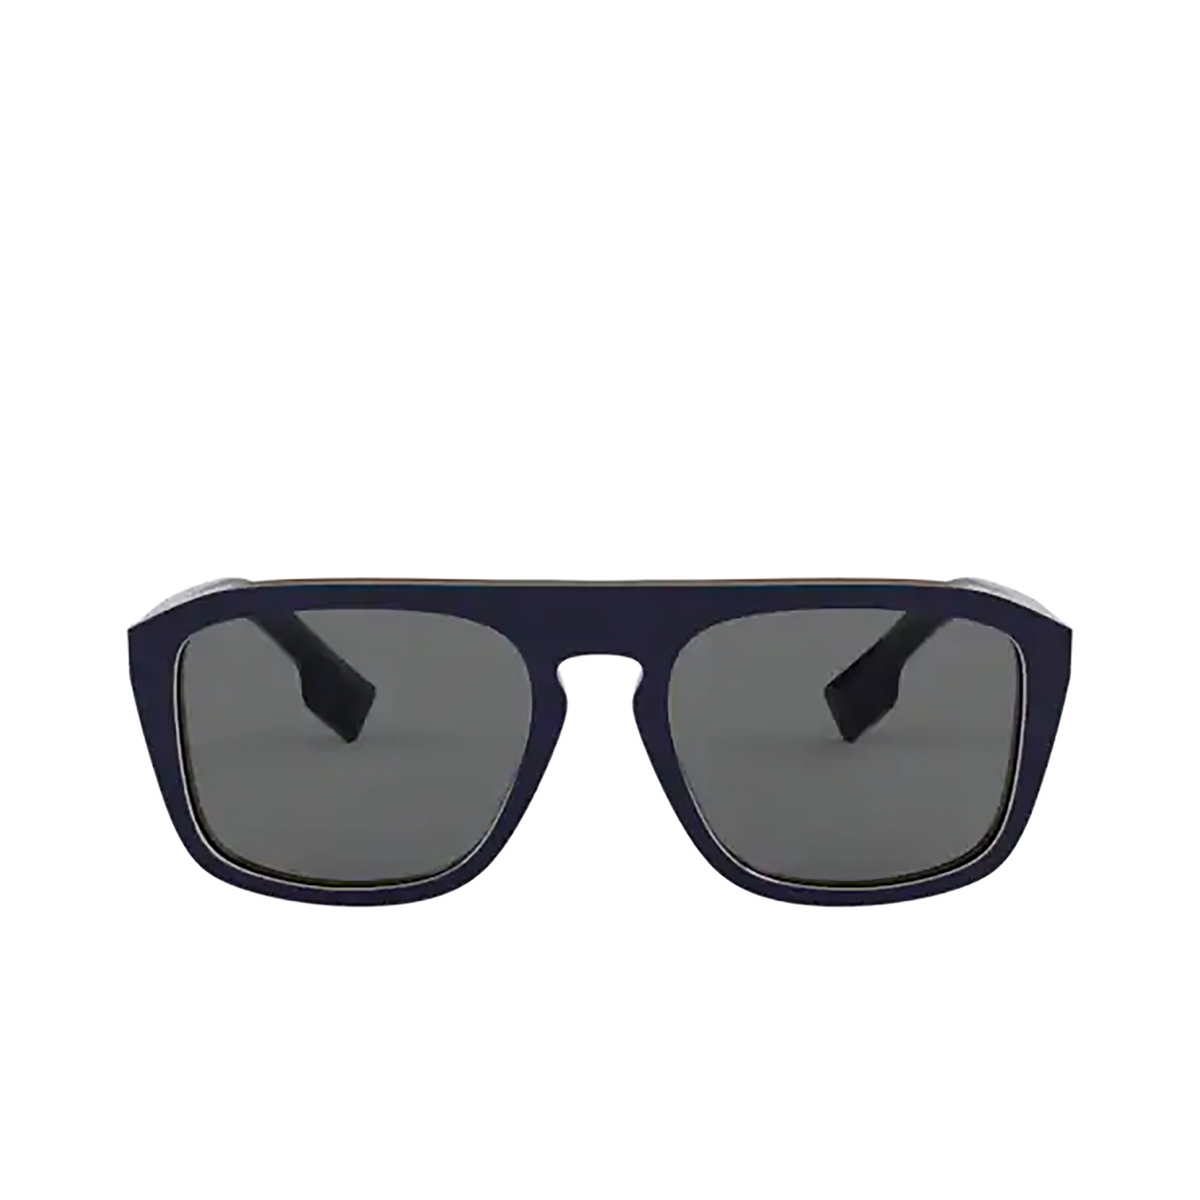 Burberry® Square Sunglasses: BE4286 color Check Multilayer Blue 379987 - front view.